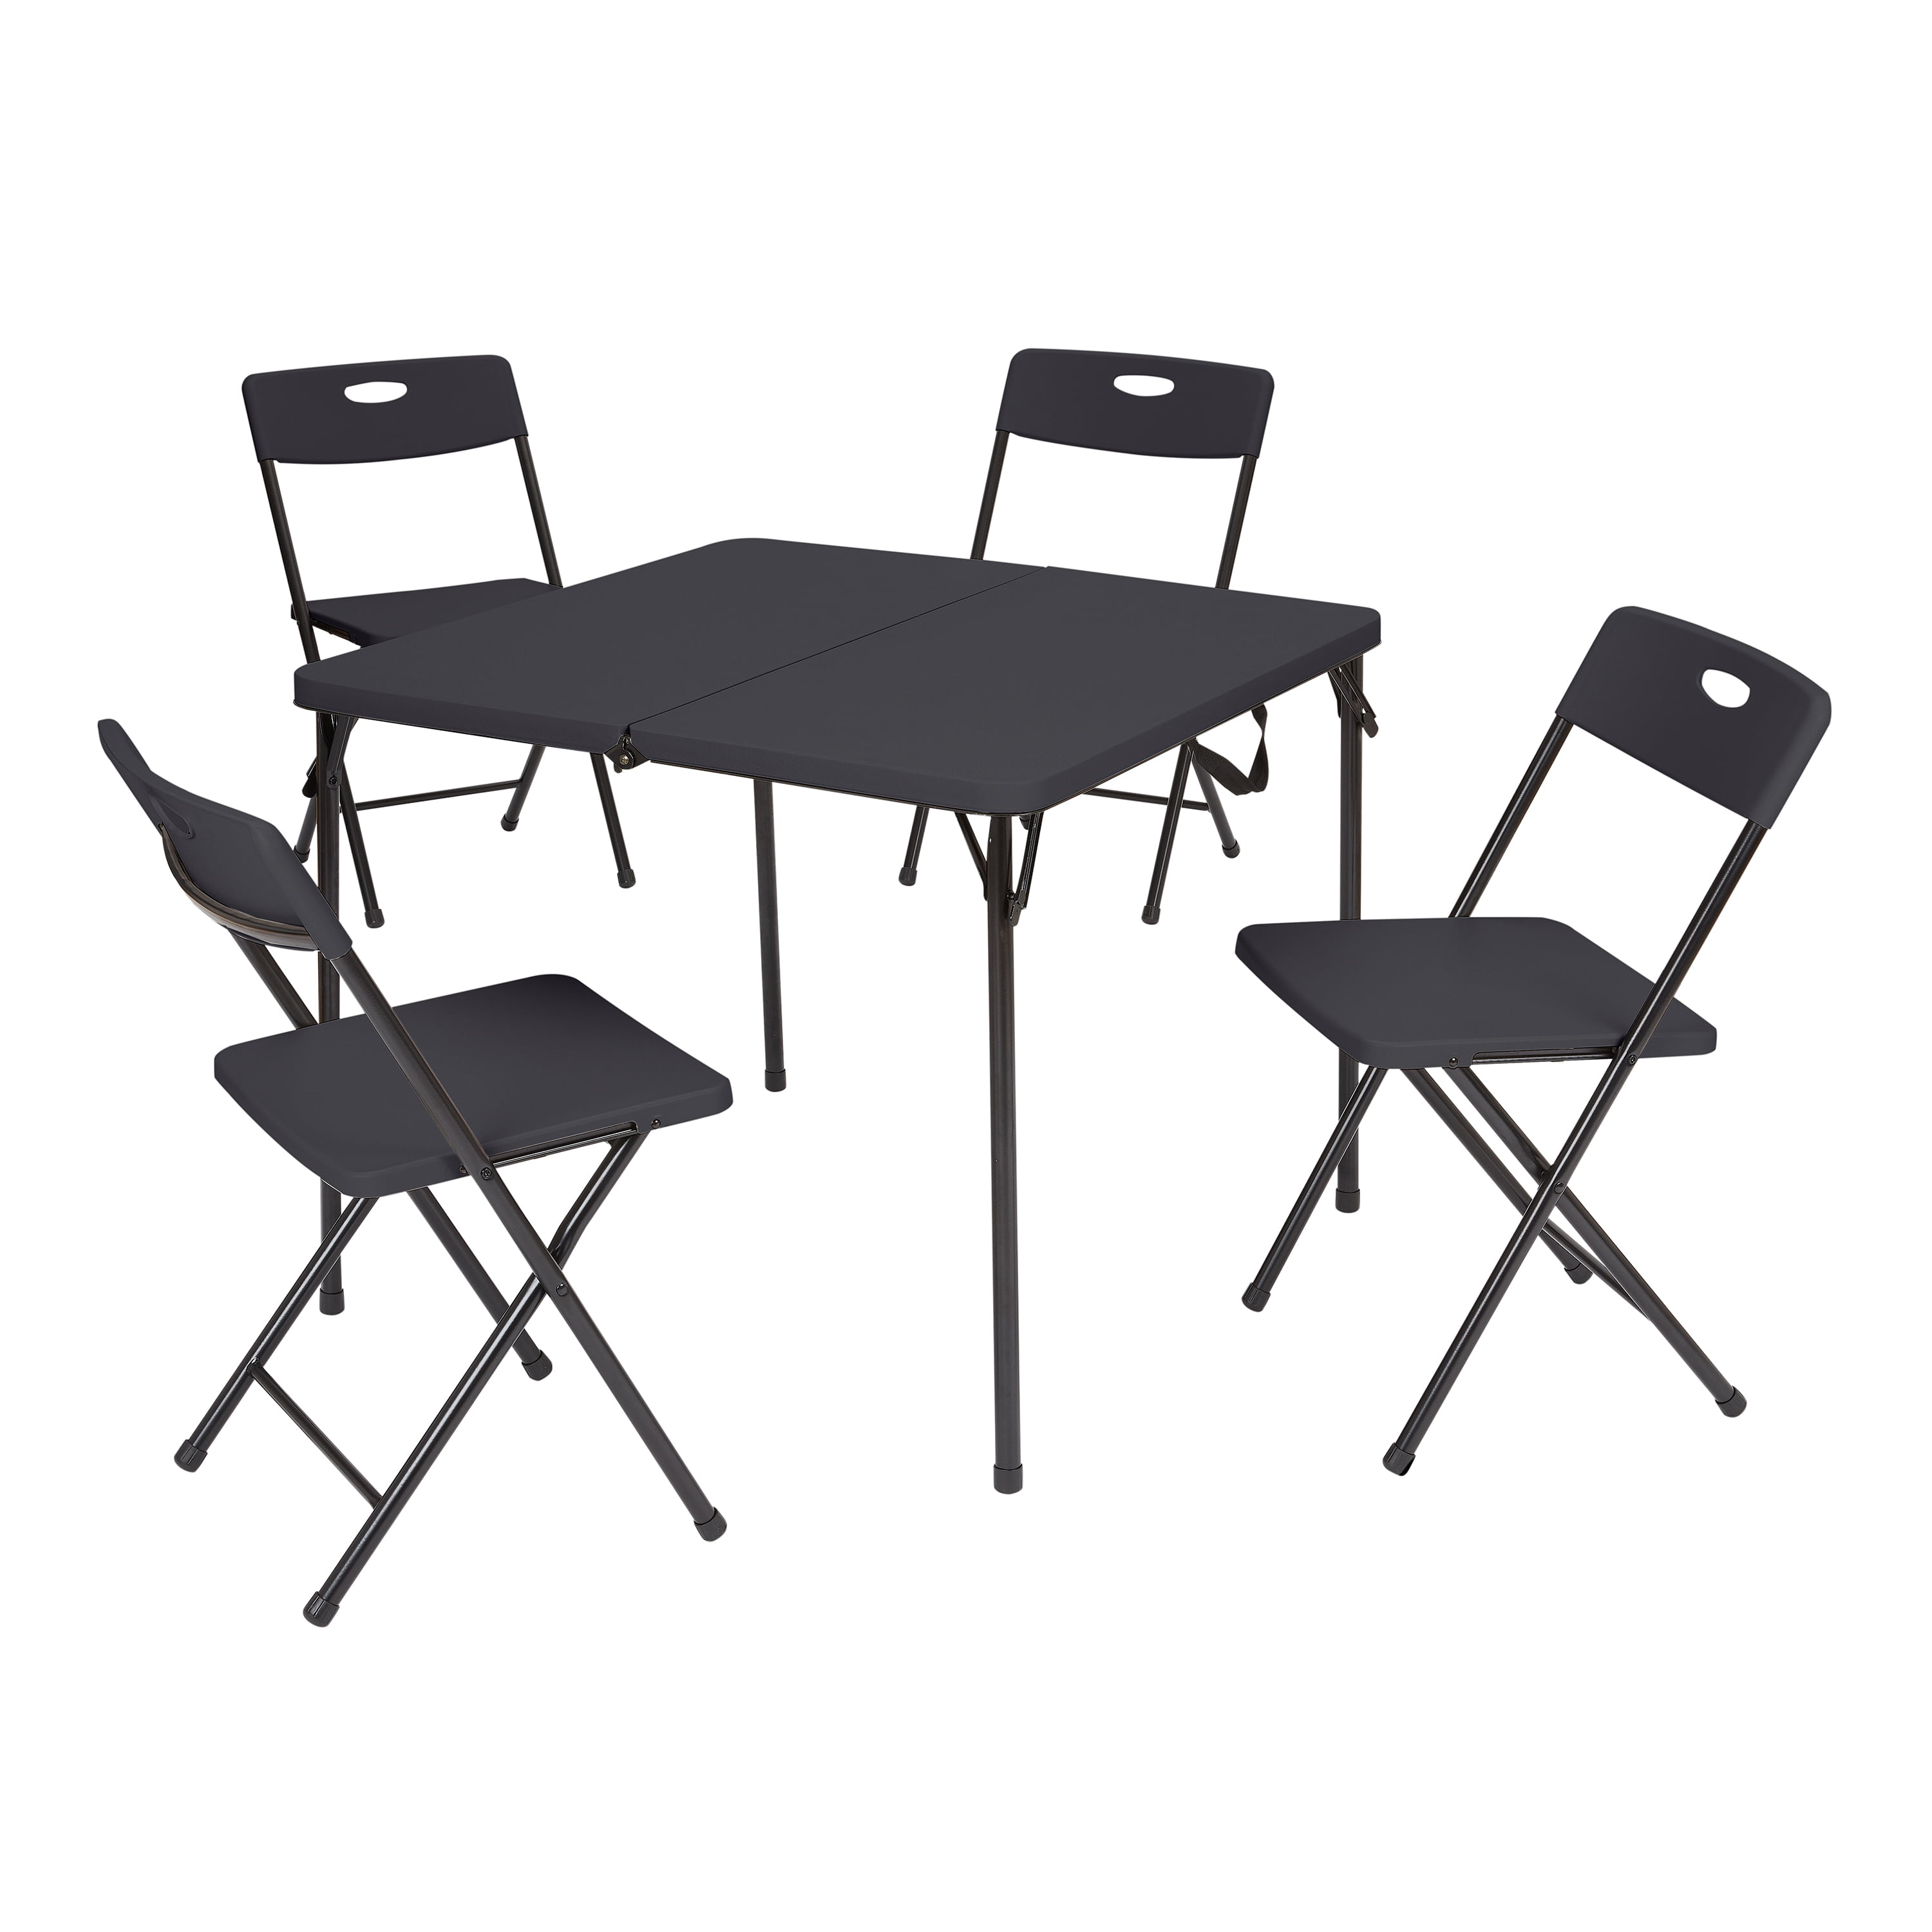 Mainstays 5 Piece Resin Plastic Card Table and Four Chairs Set